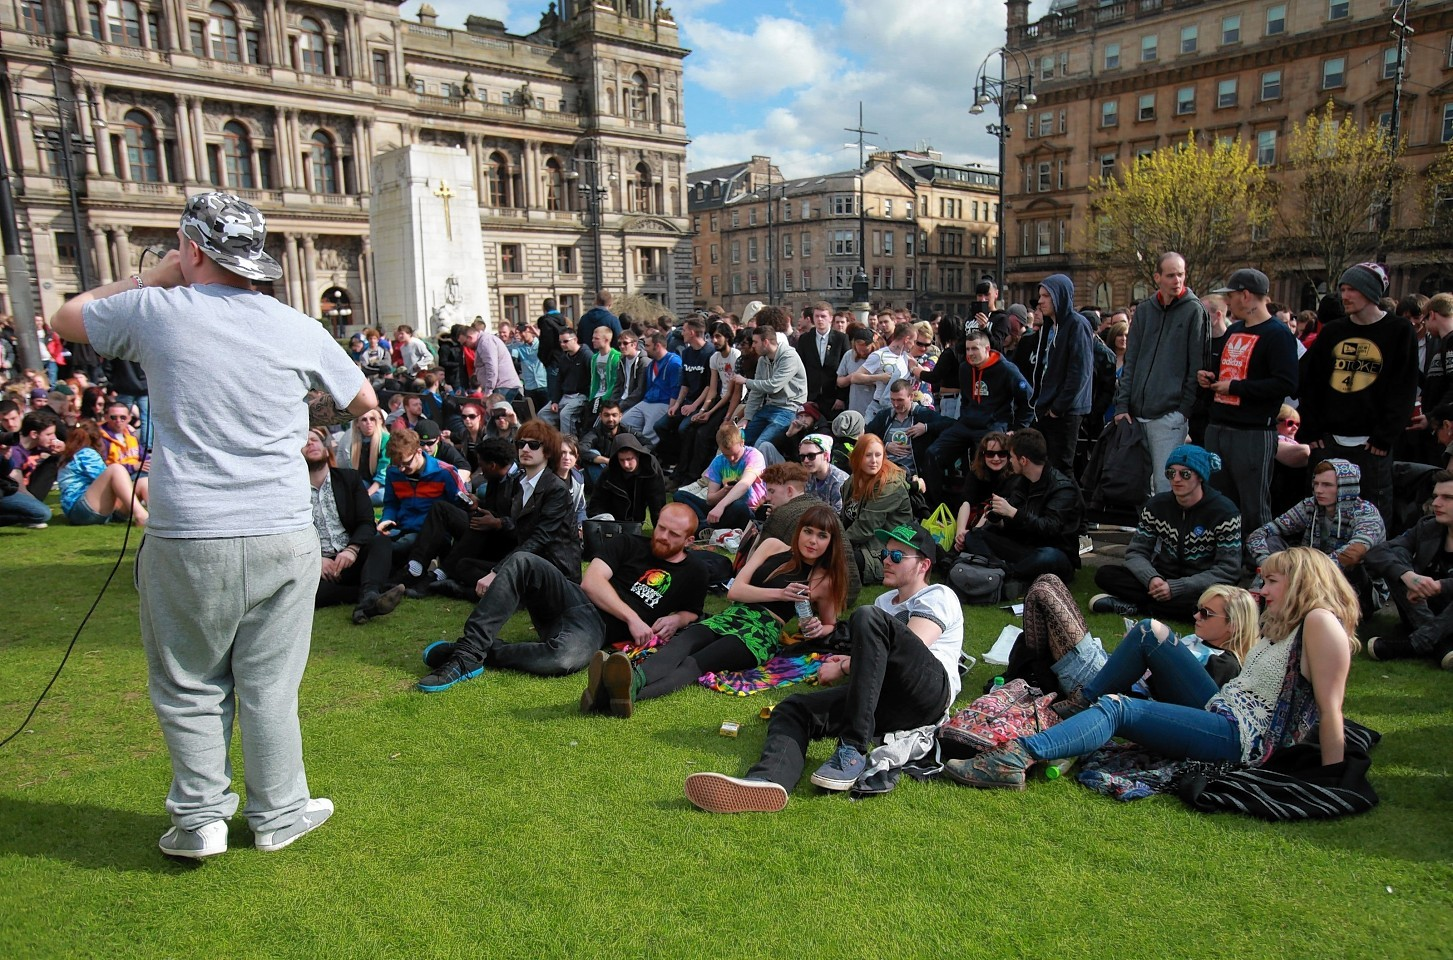 Hundreds of people came together for the 420 Cannabis Celebrations in George Square in Glasgow